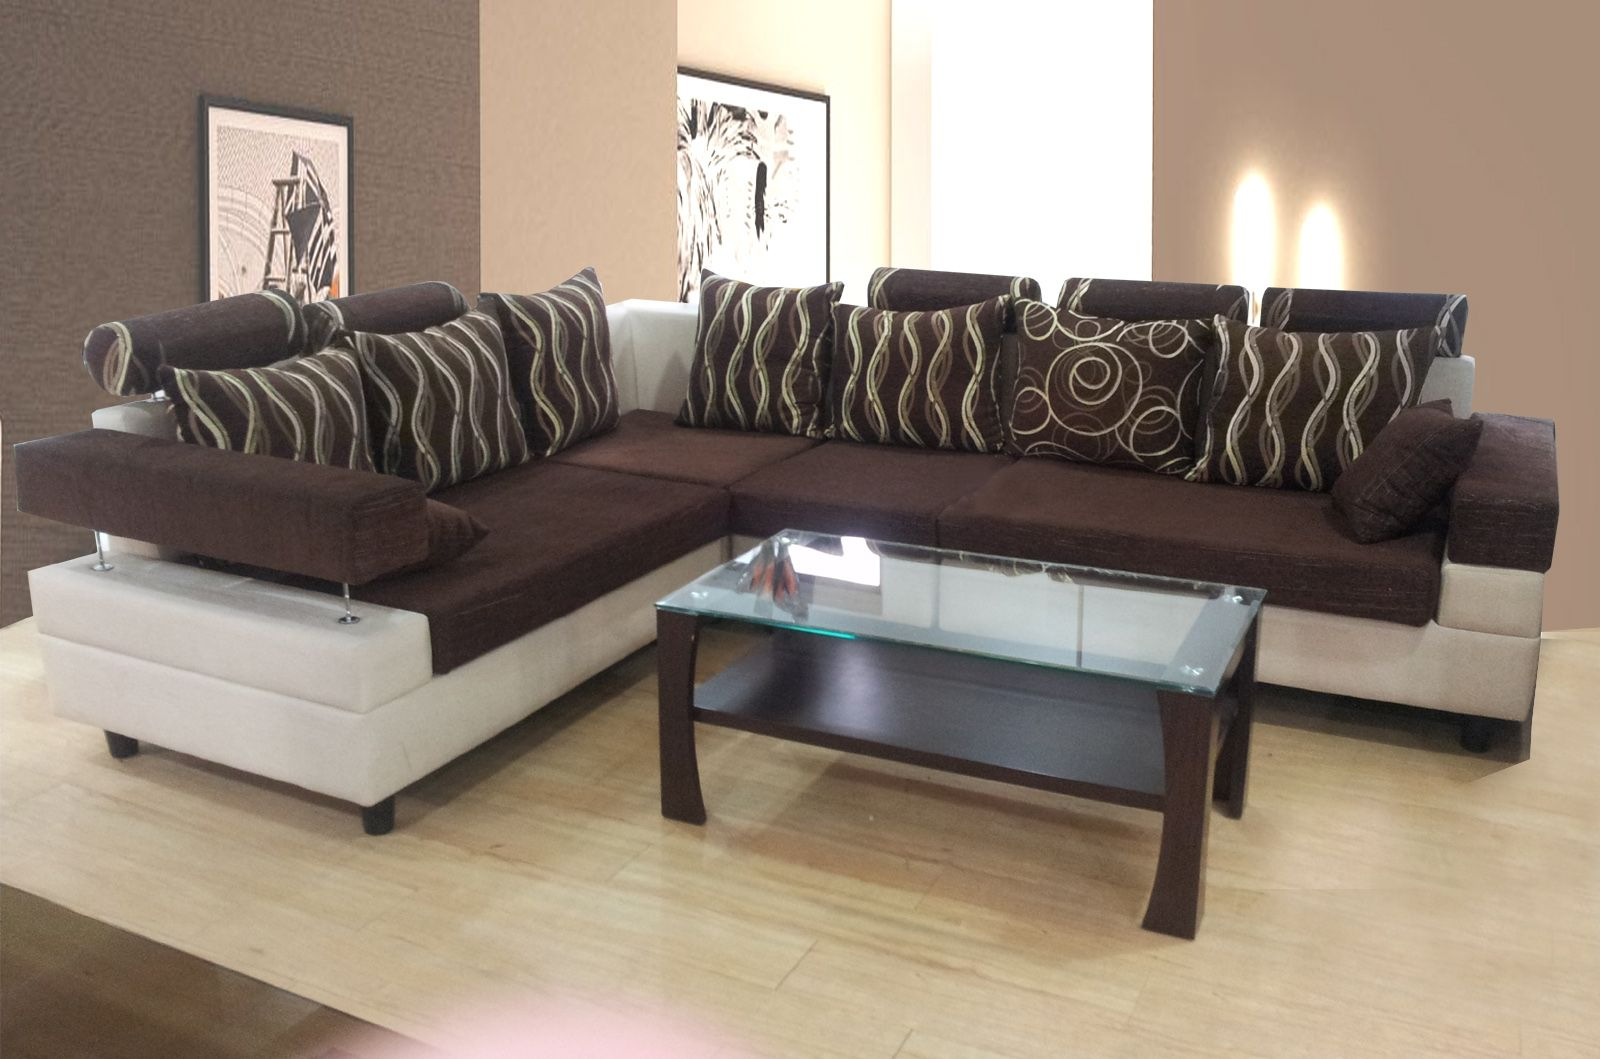 nice sofa sets for cheap large tan sectional affordable and good quality nairobi set designs more